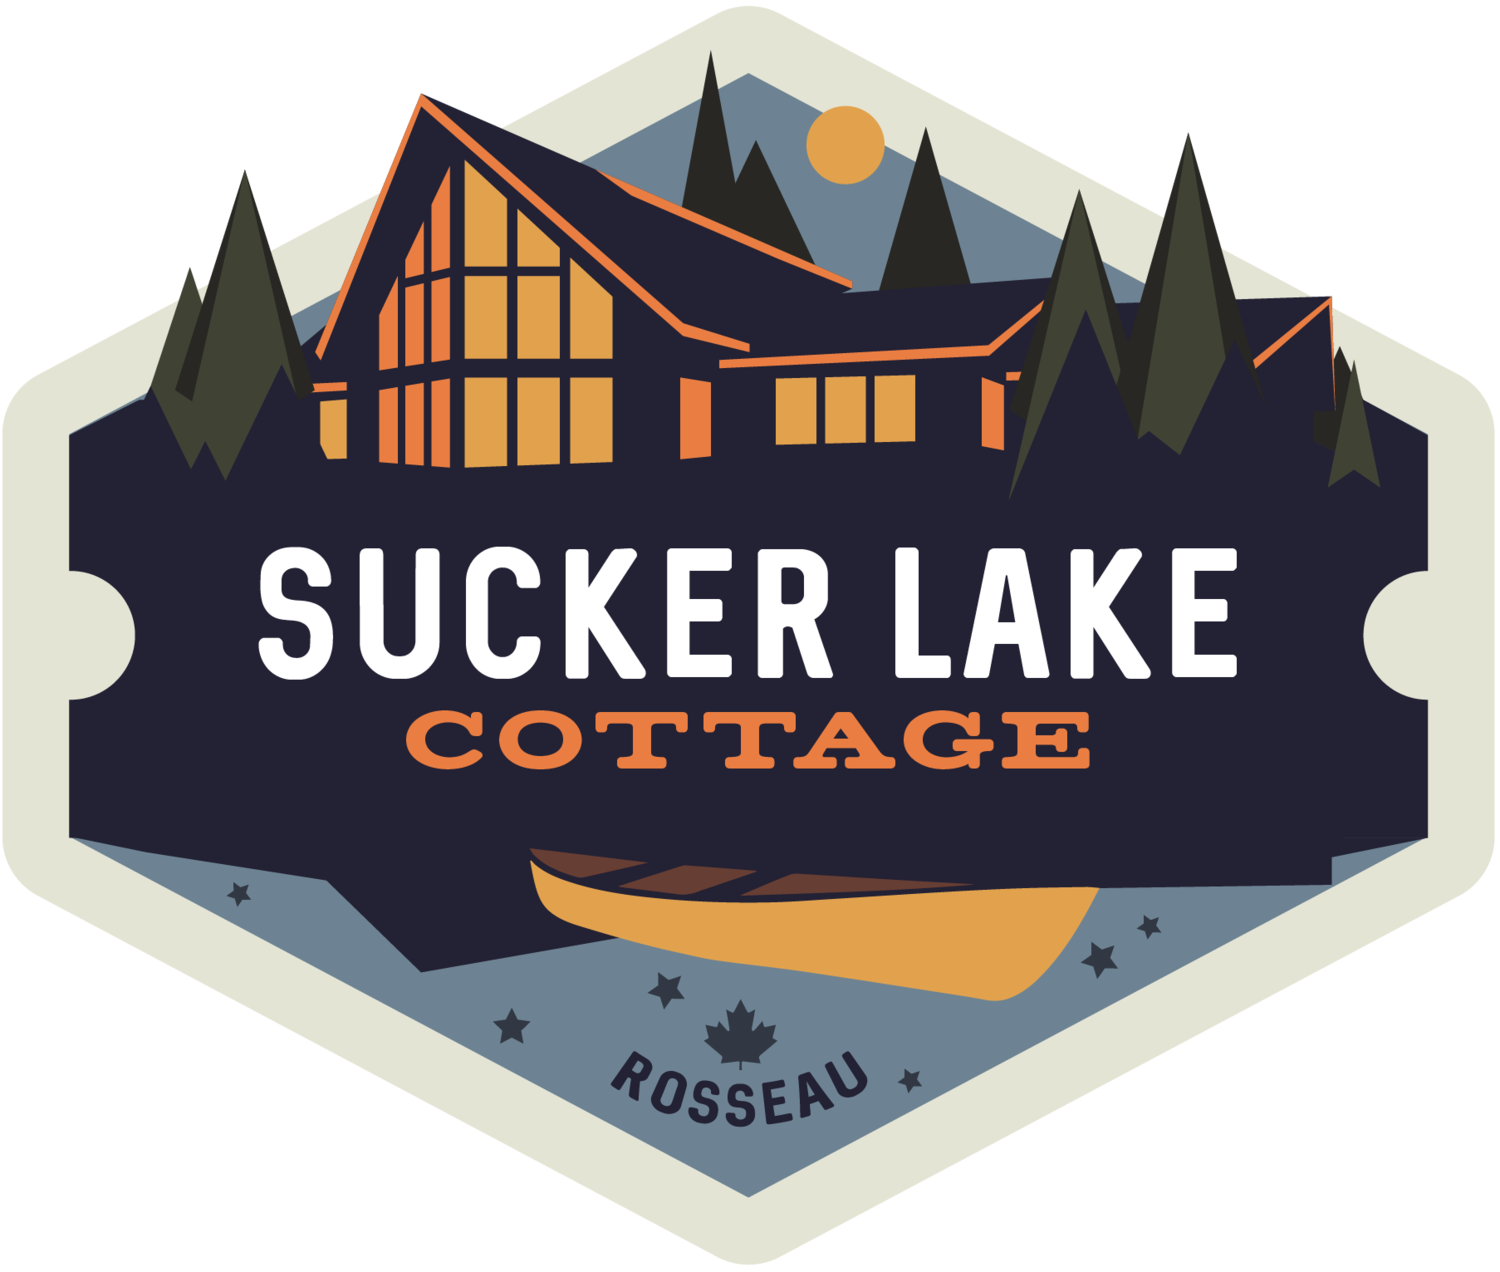 Sucker Lake Cottage